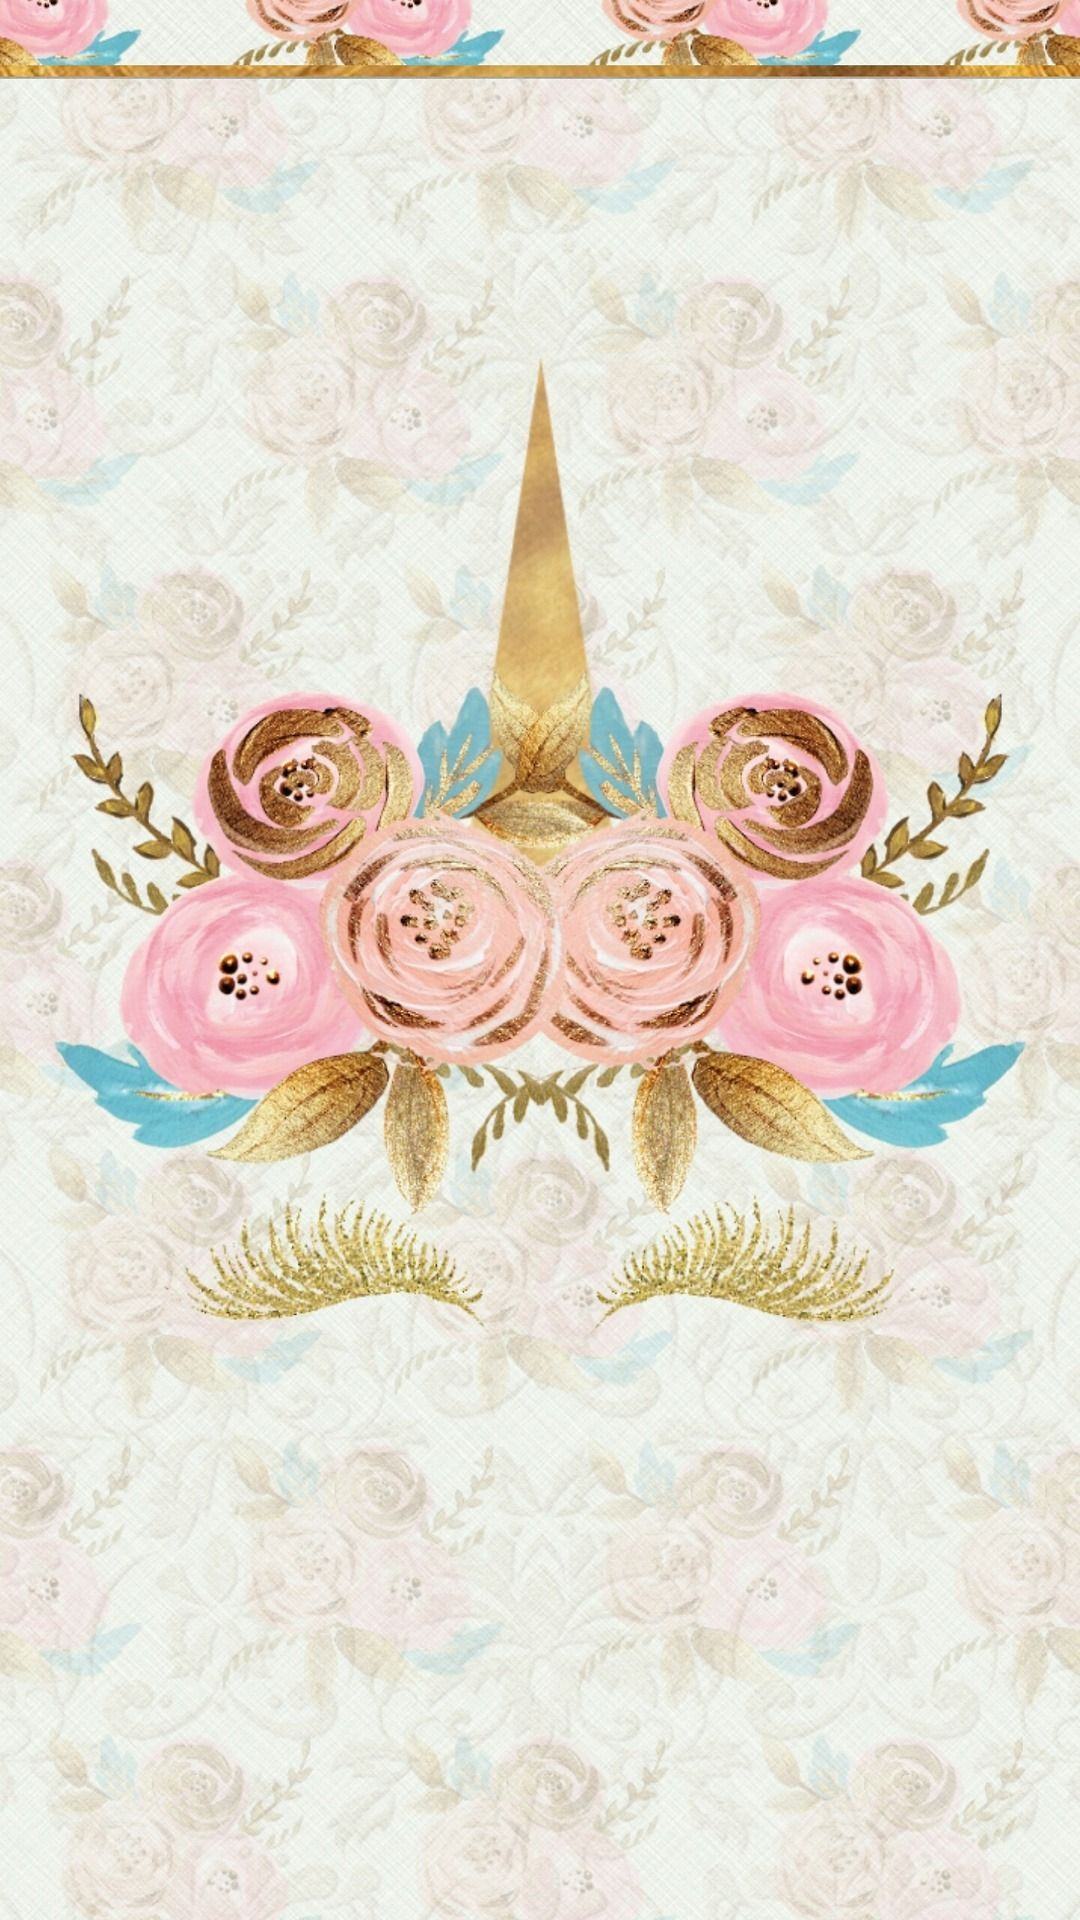 Rose Gold Cute Pictures Hupages Download Iphone Wallpapers Gold Unicorn Wallpaper Pink Unicorn Wallpaper Iphone Wallpaper Unicorn